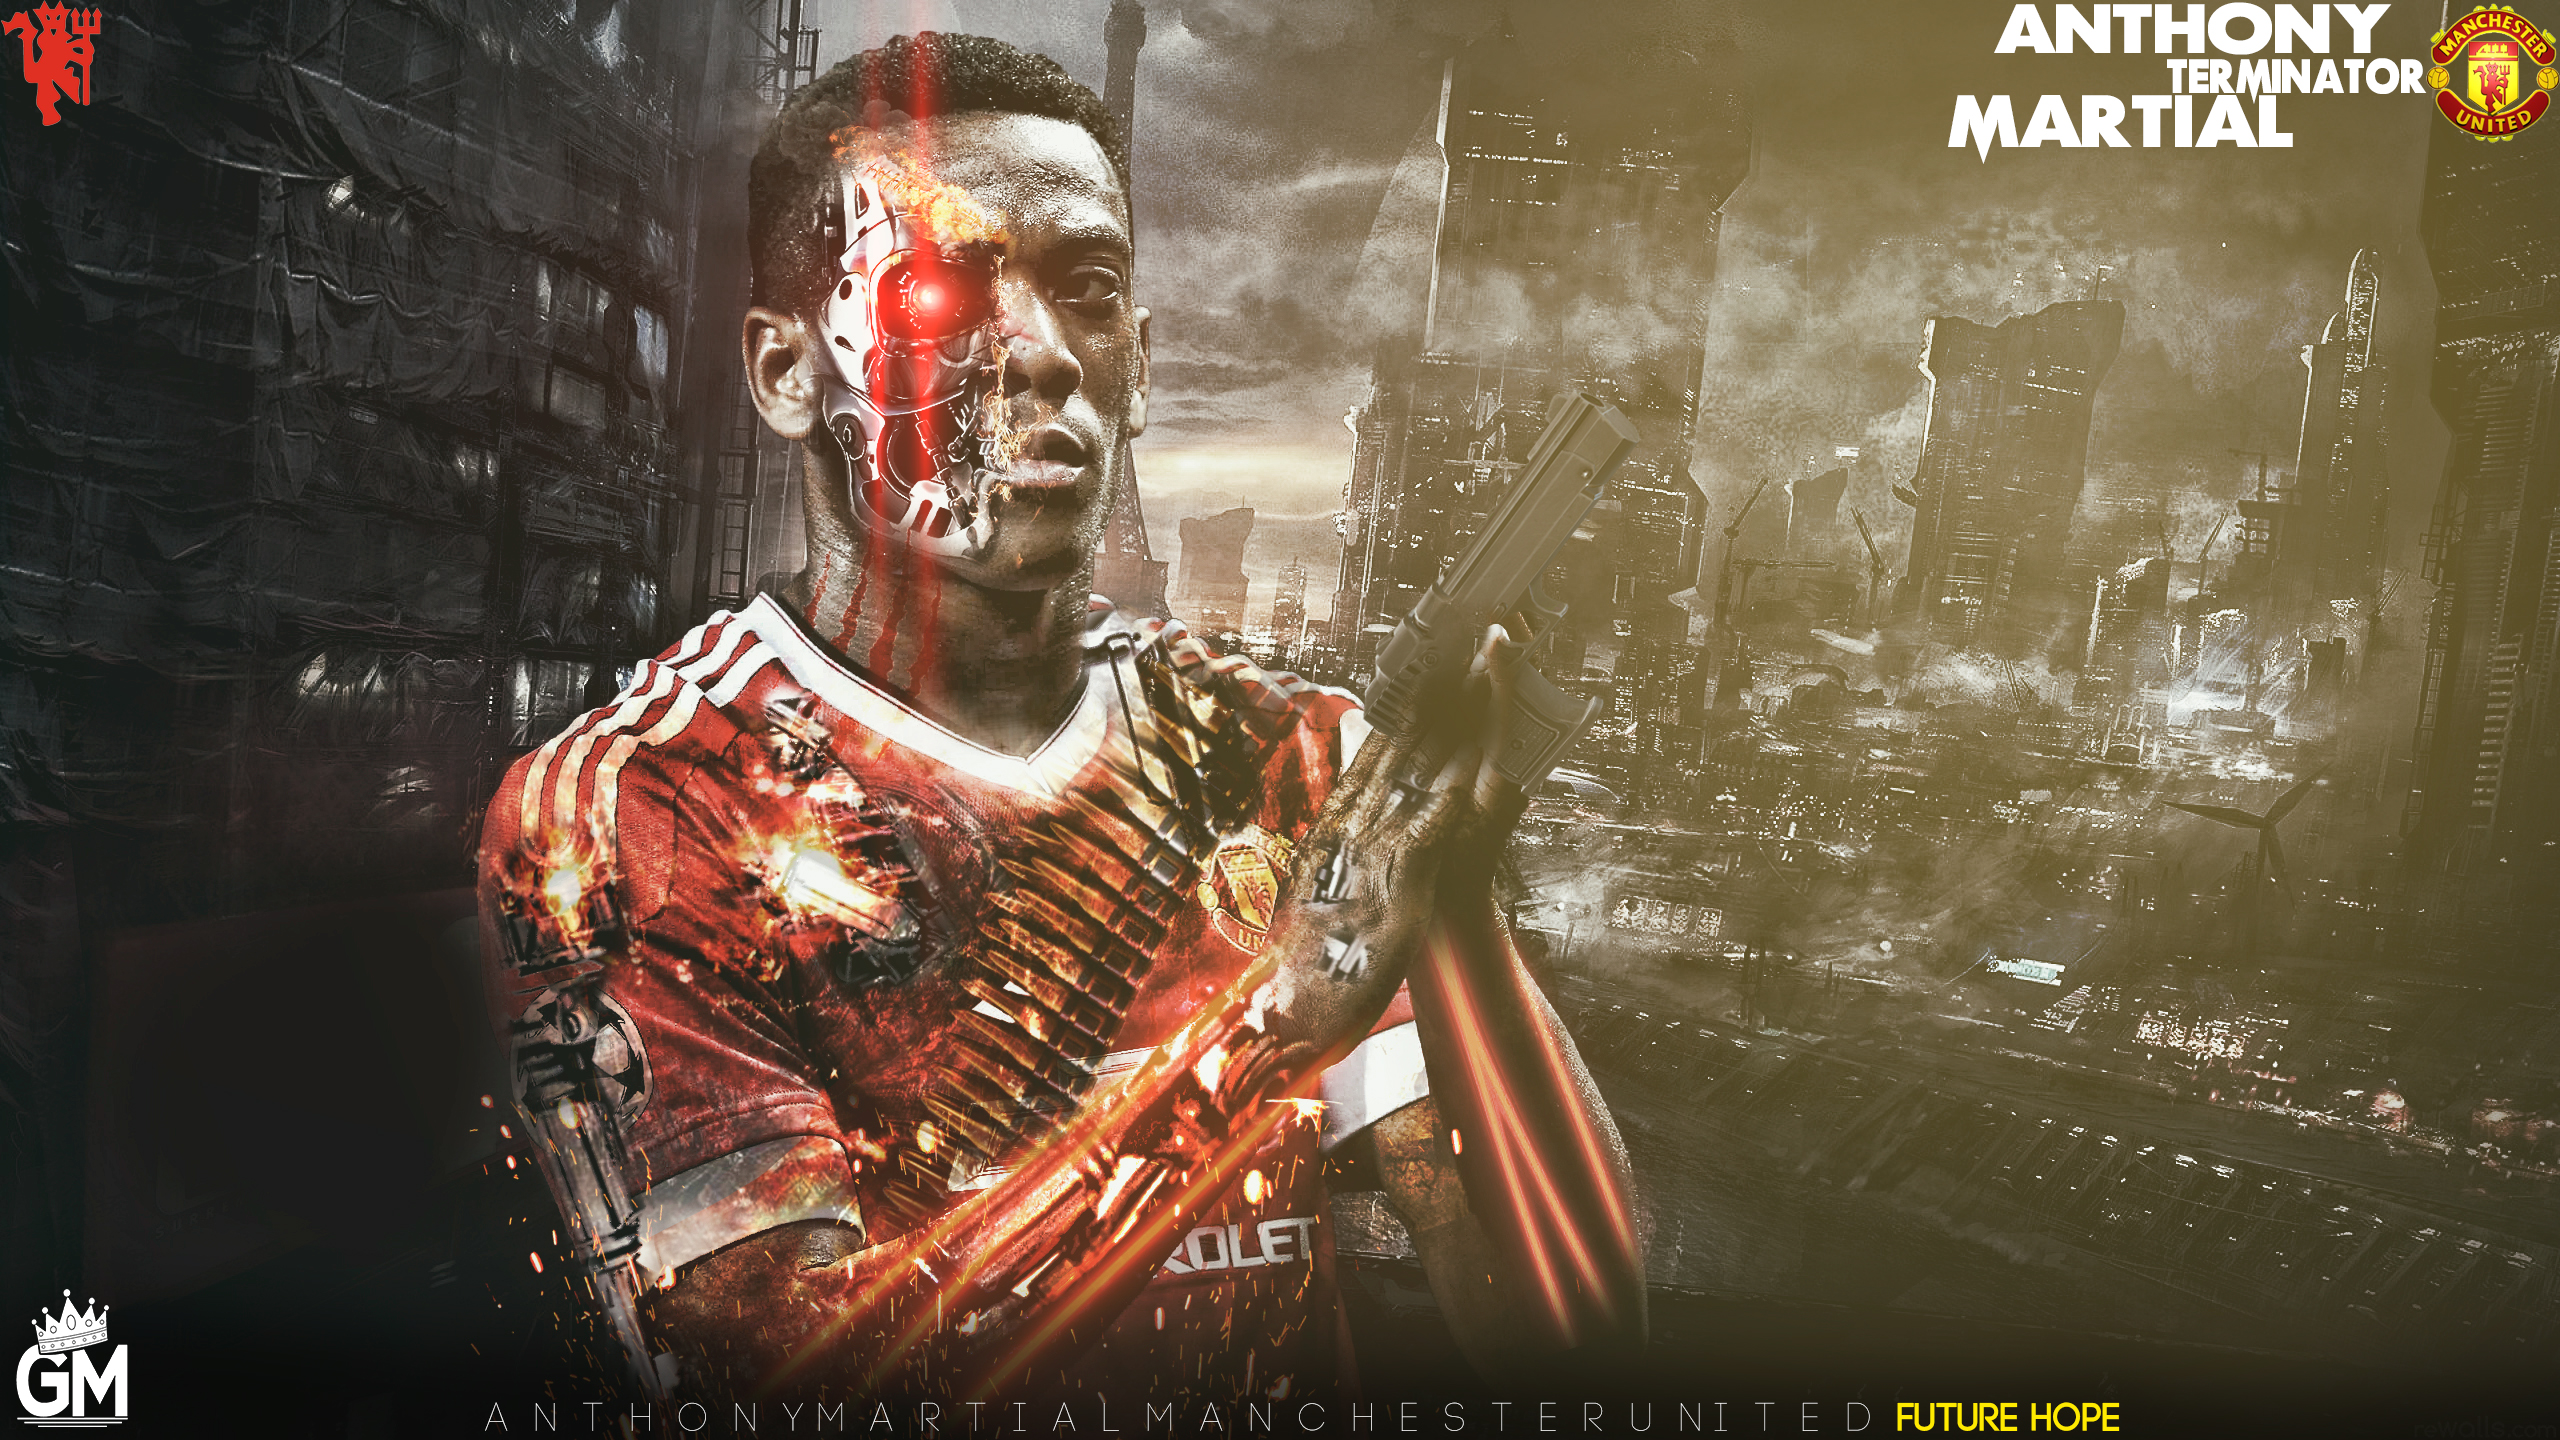 Anthony Martial Wallpaper By GraphicalManiacs On DeviantArt